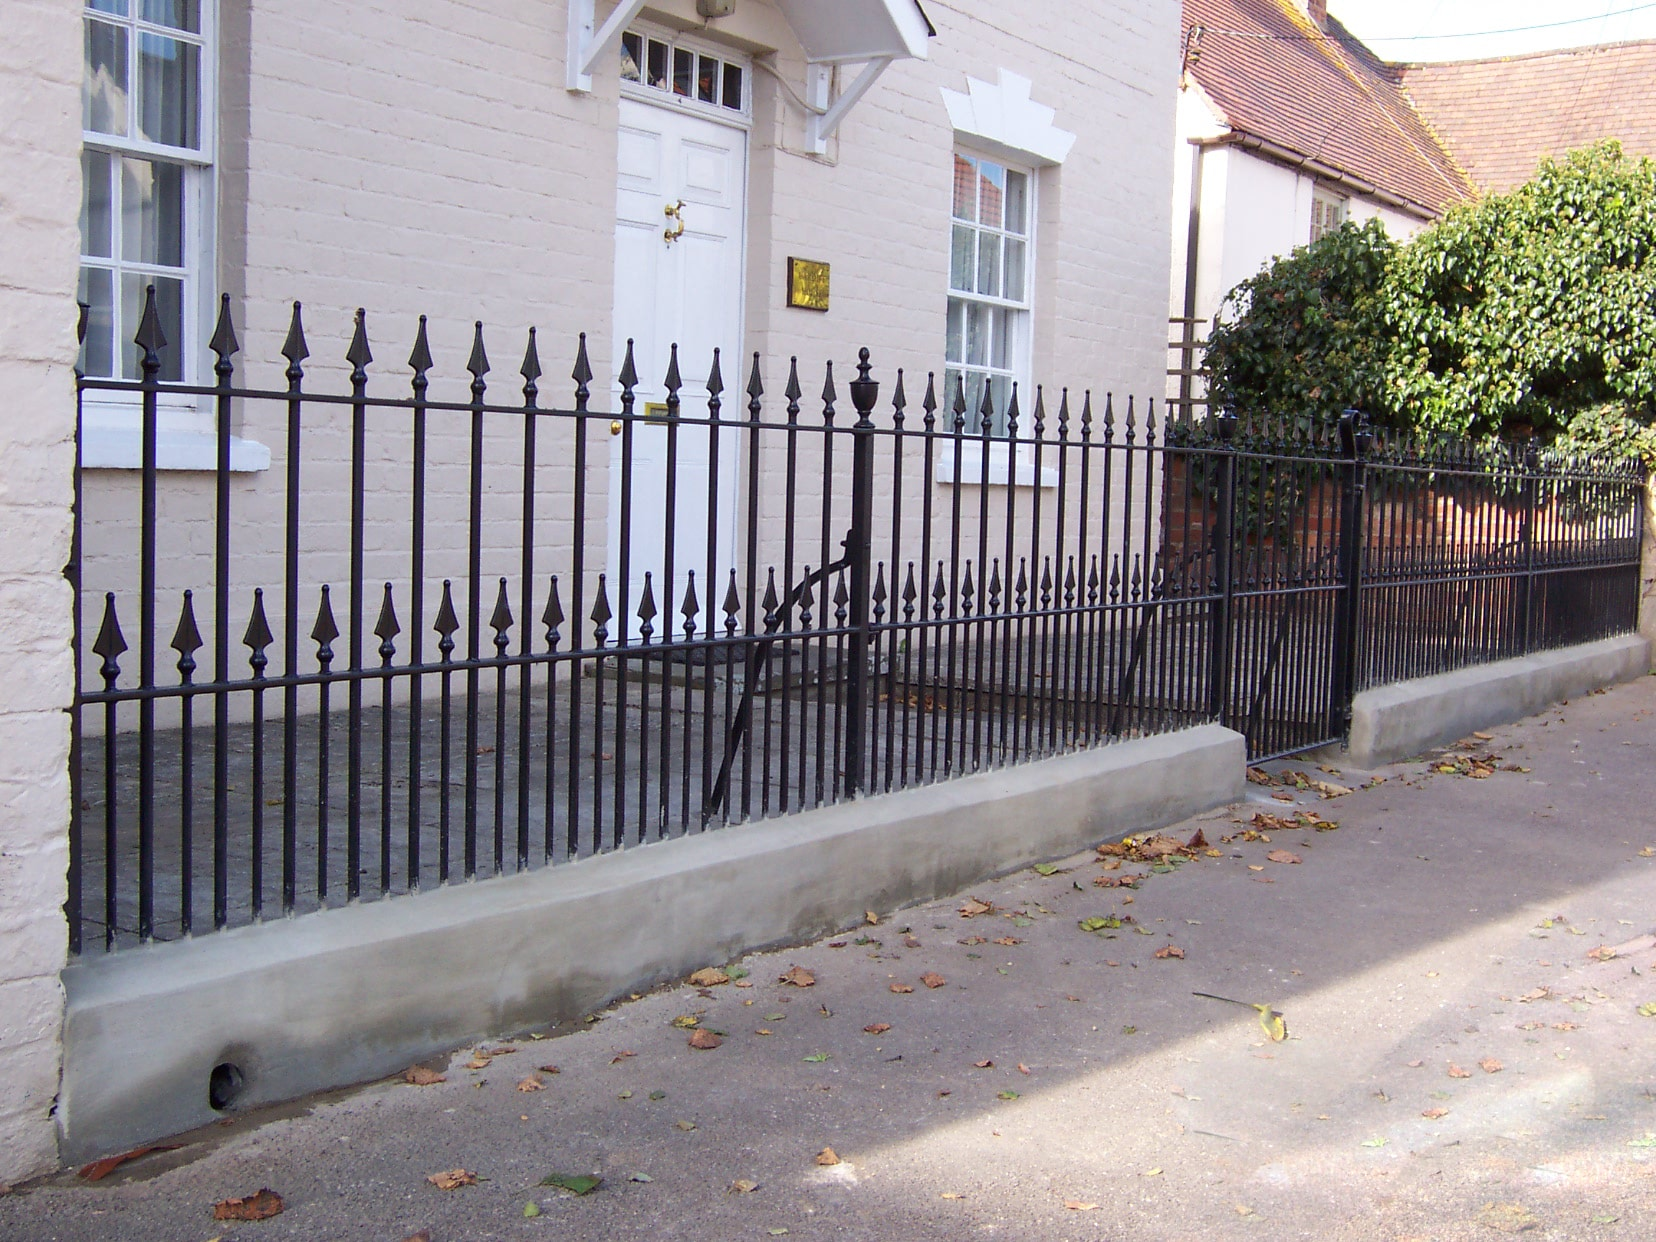 - Iron Railings